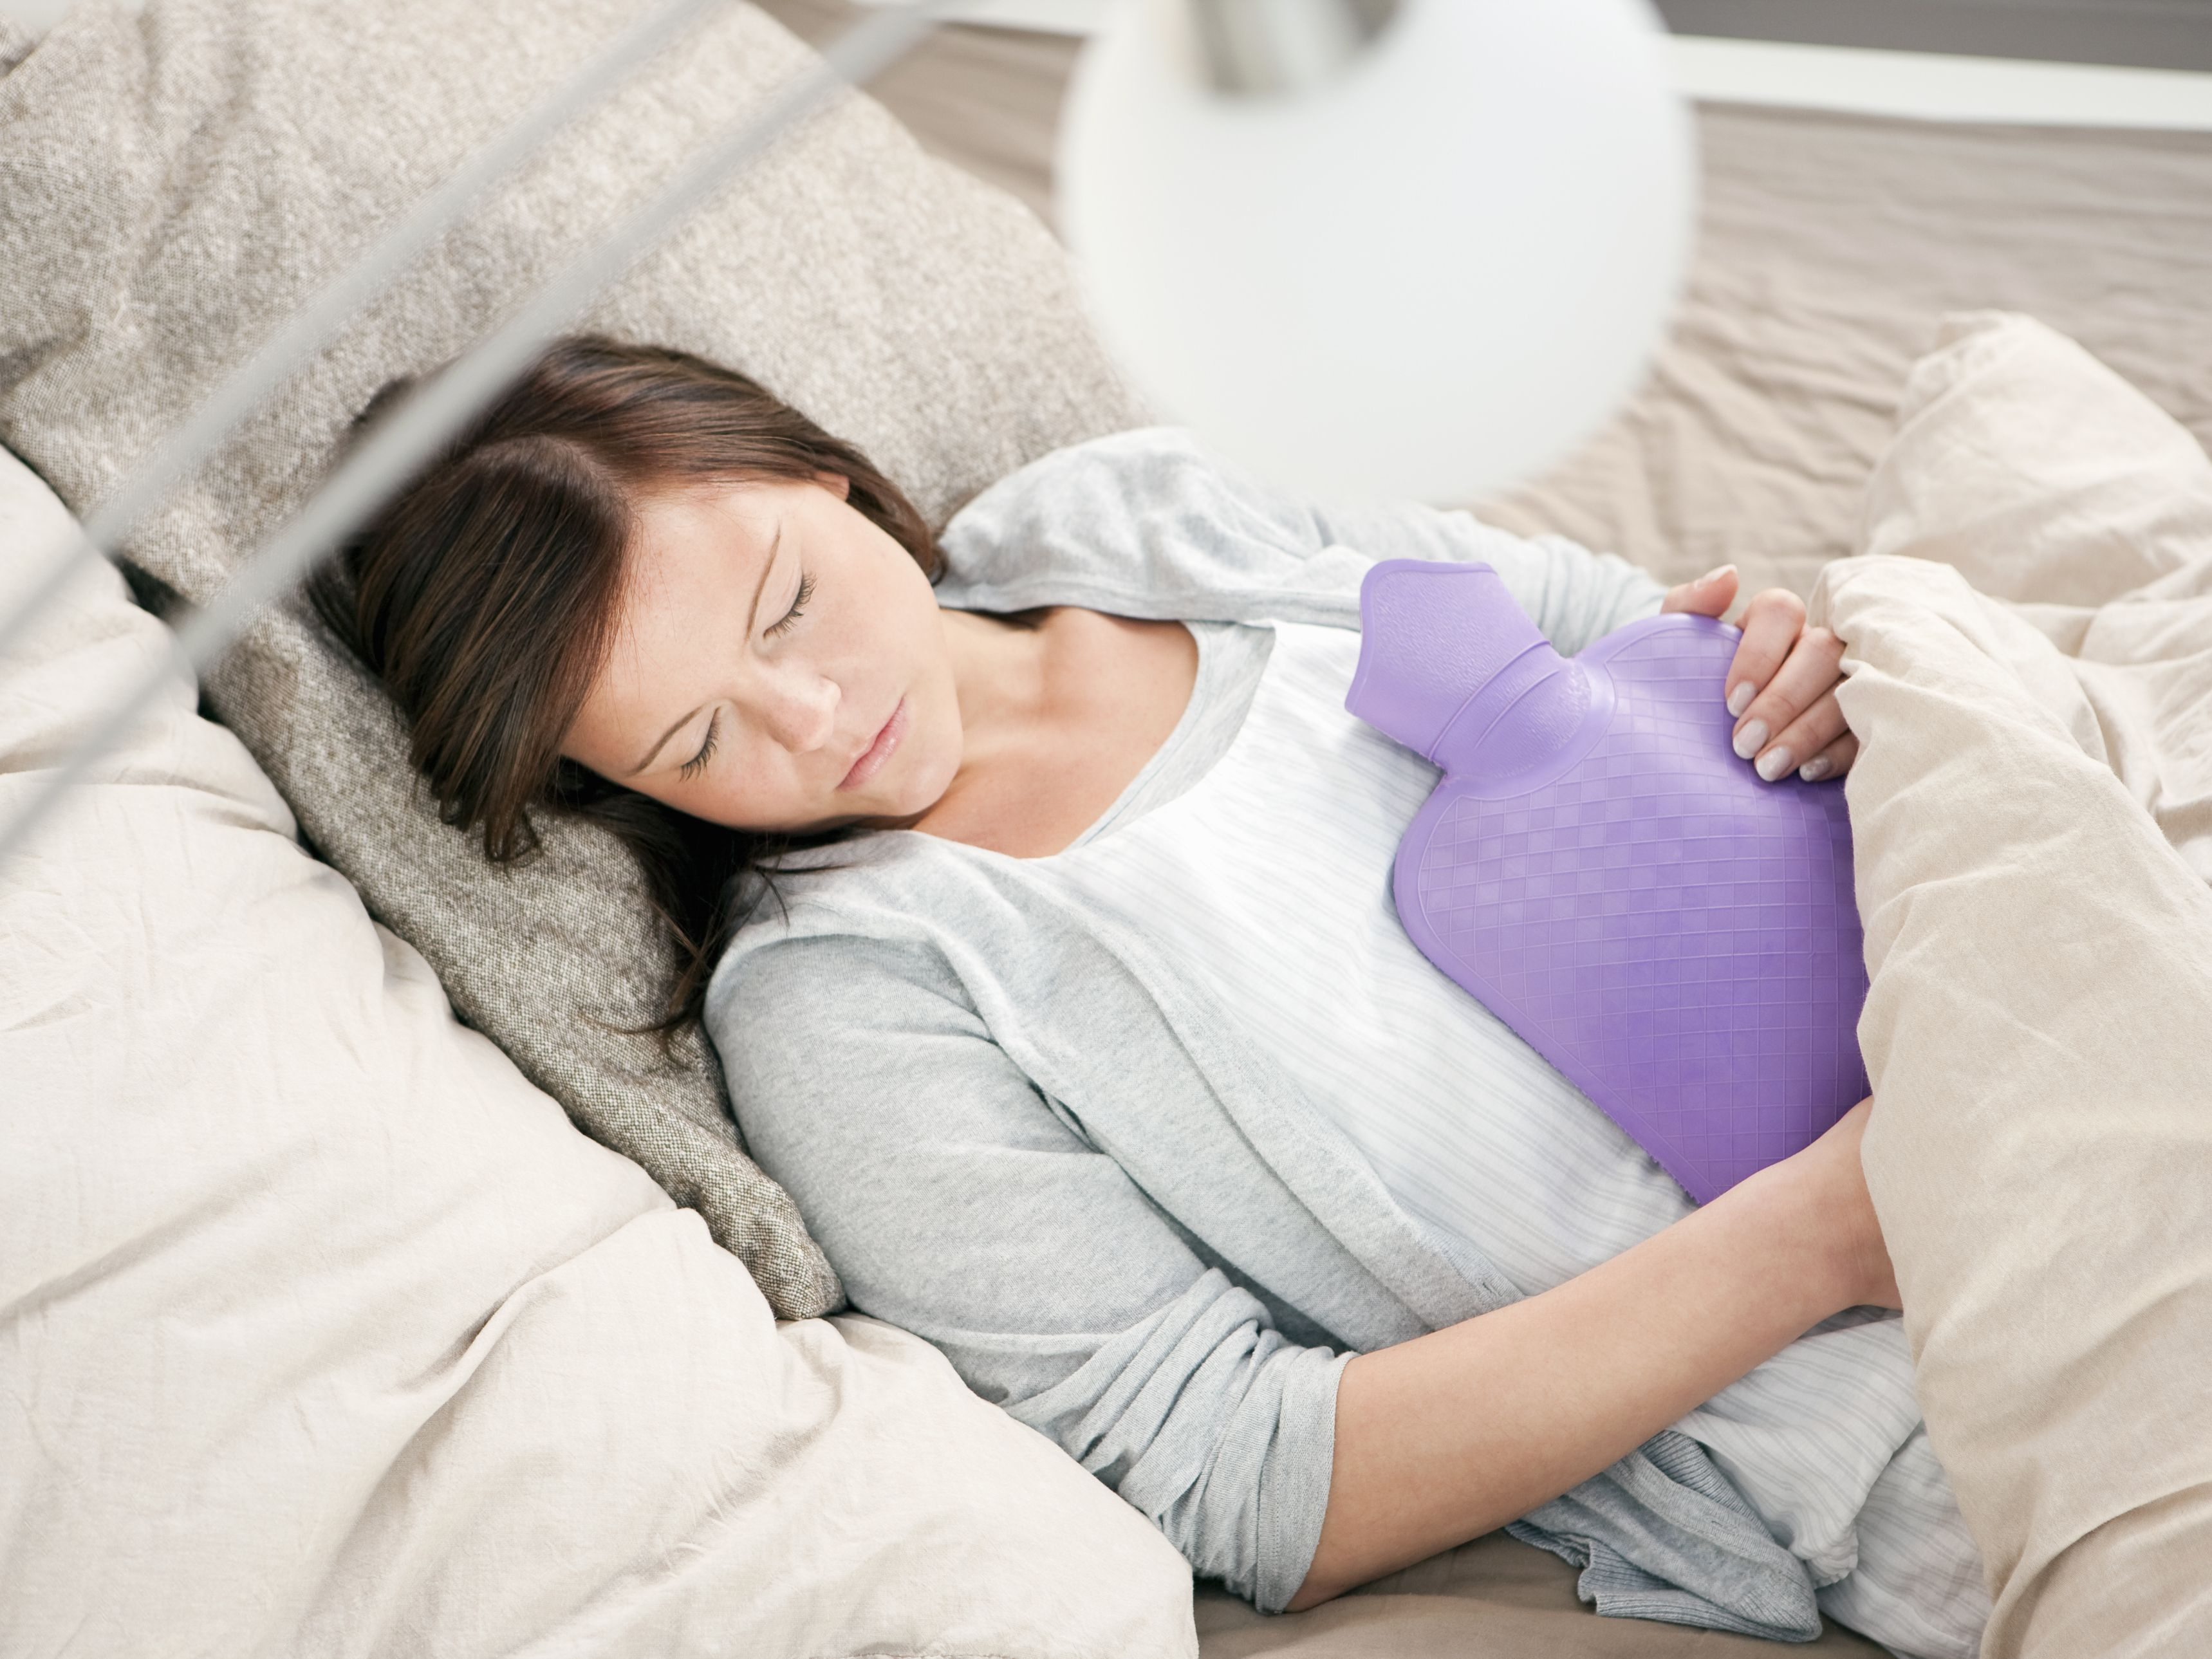 Gallbladder Disease: Signs, Symptoms, and Complications